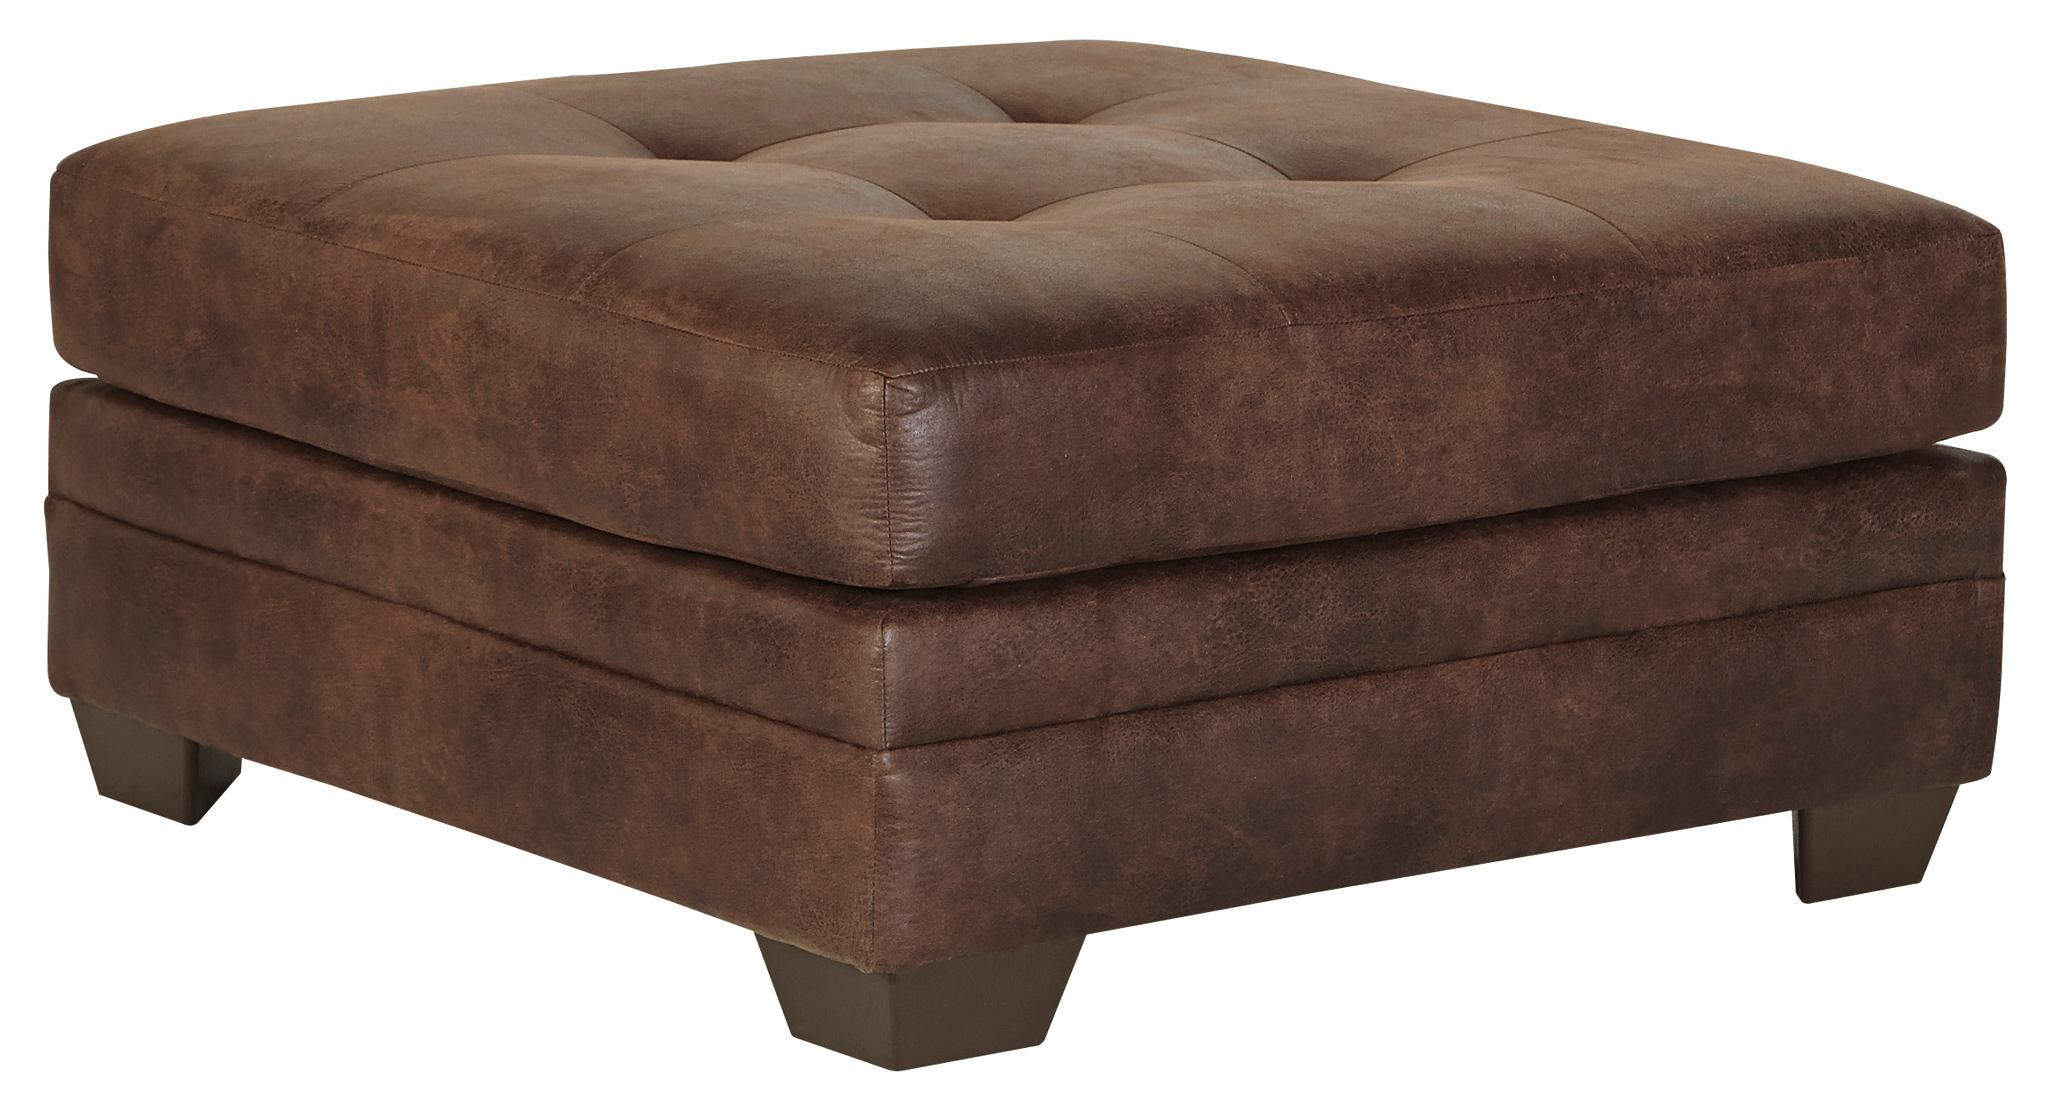 Signature Design by Ashley Kelemen - Amber Oversized Accent Ottoman - Item Number: 4710008